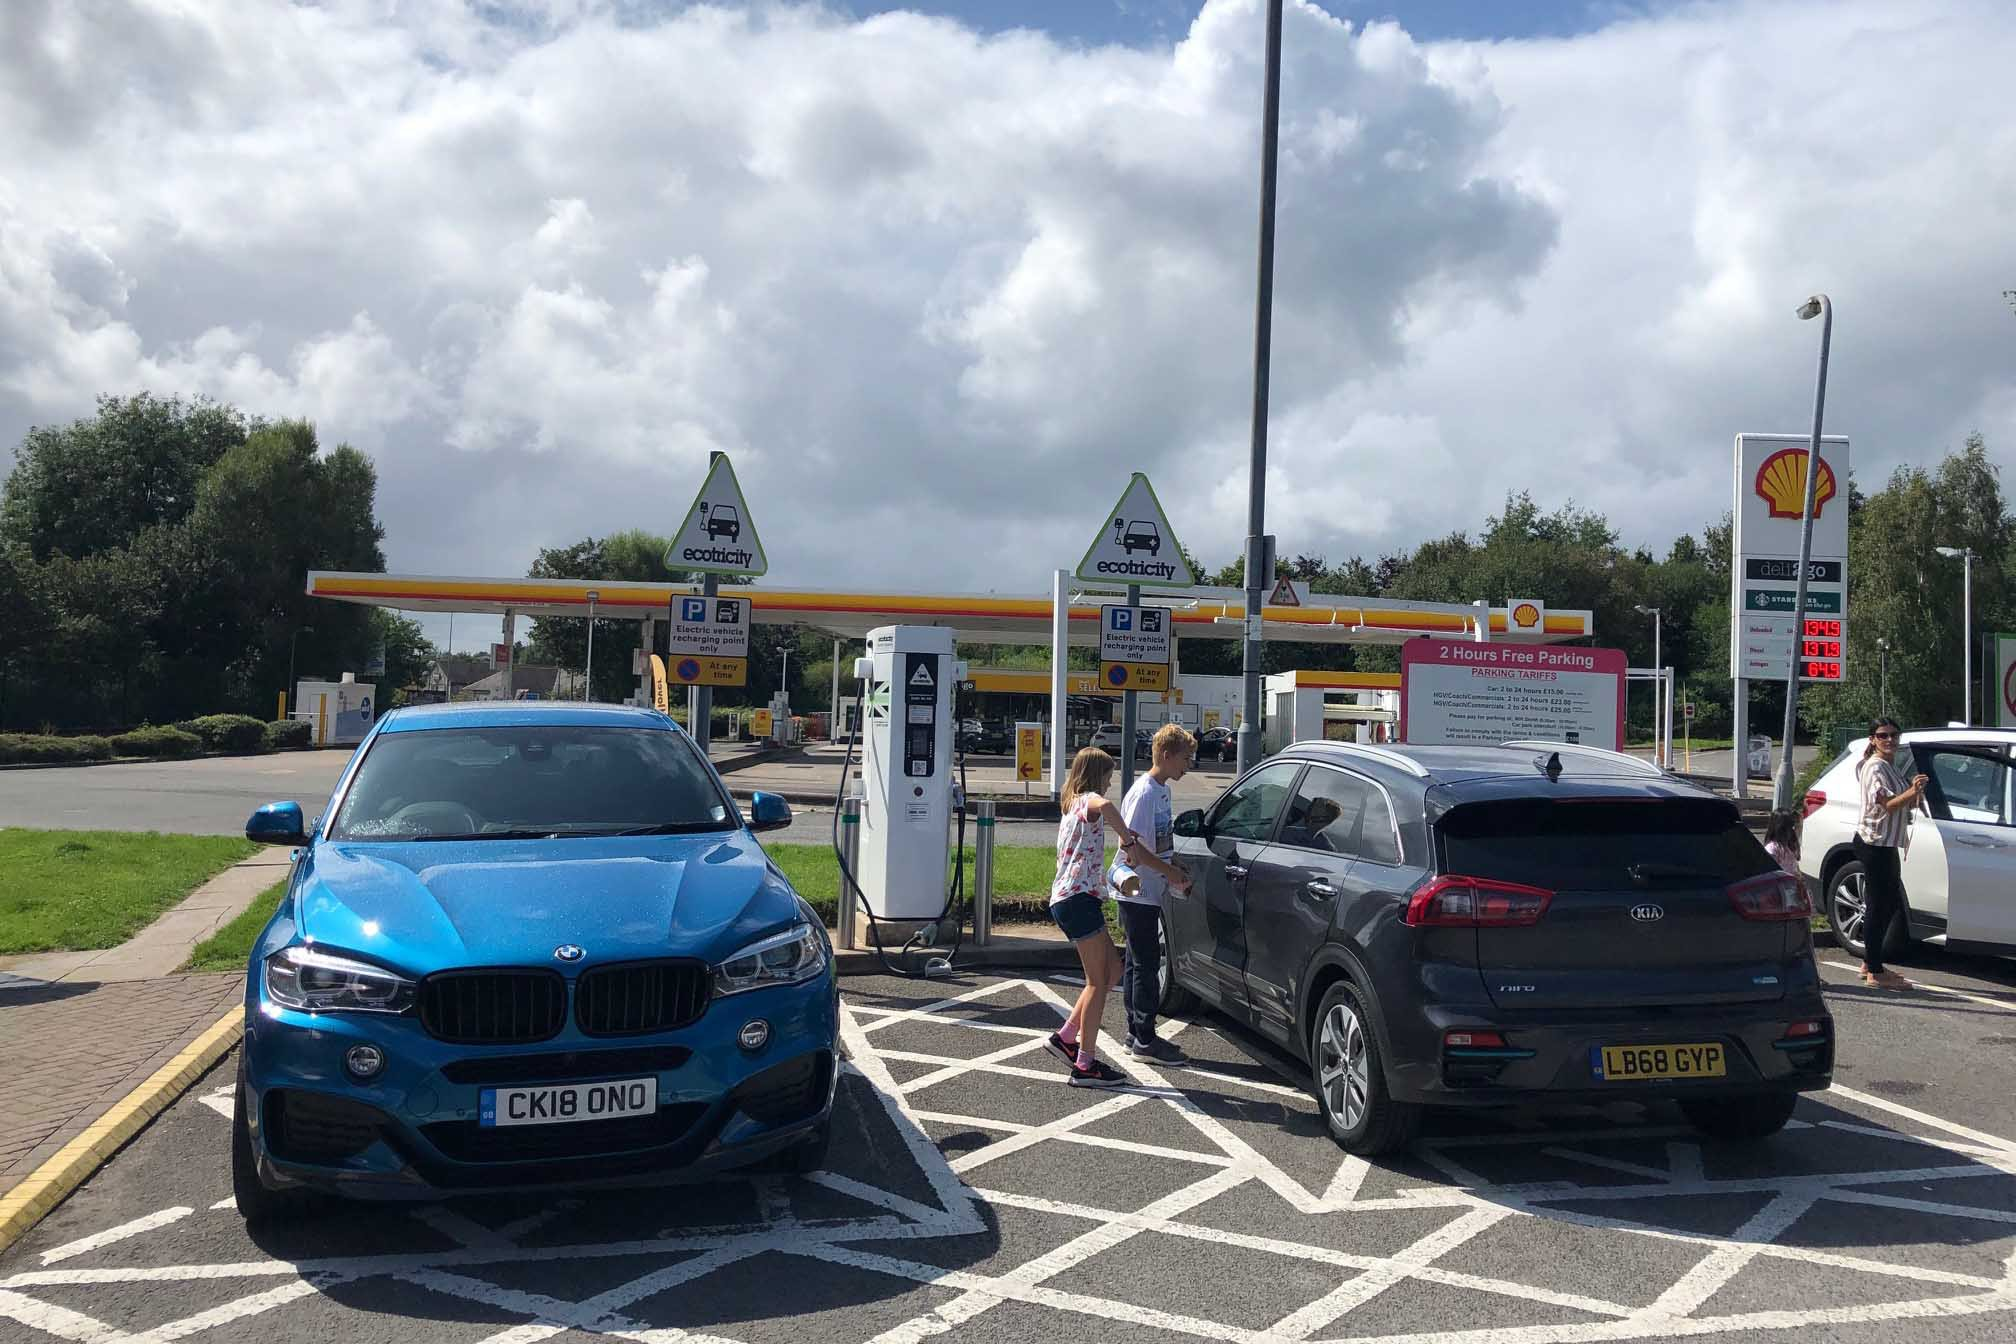 Kia e-Niro at an Ecotricity charger